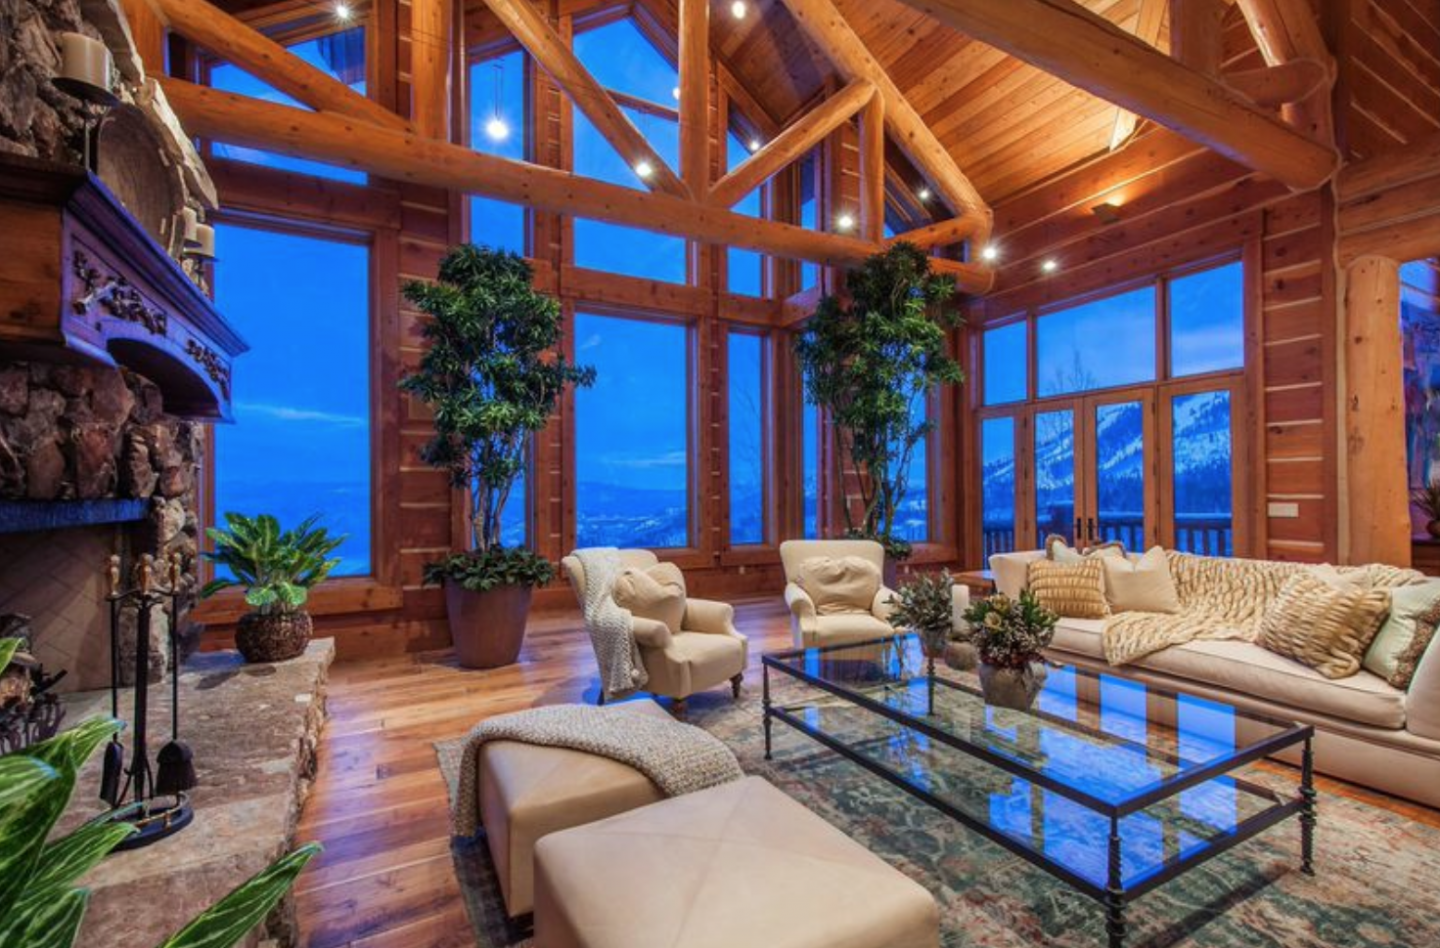 Wood beams pervade the home.